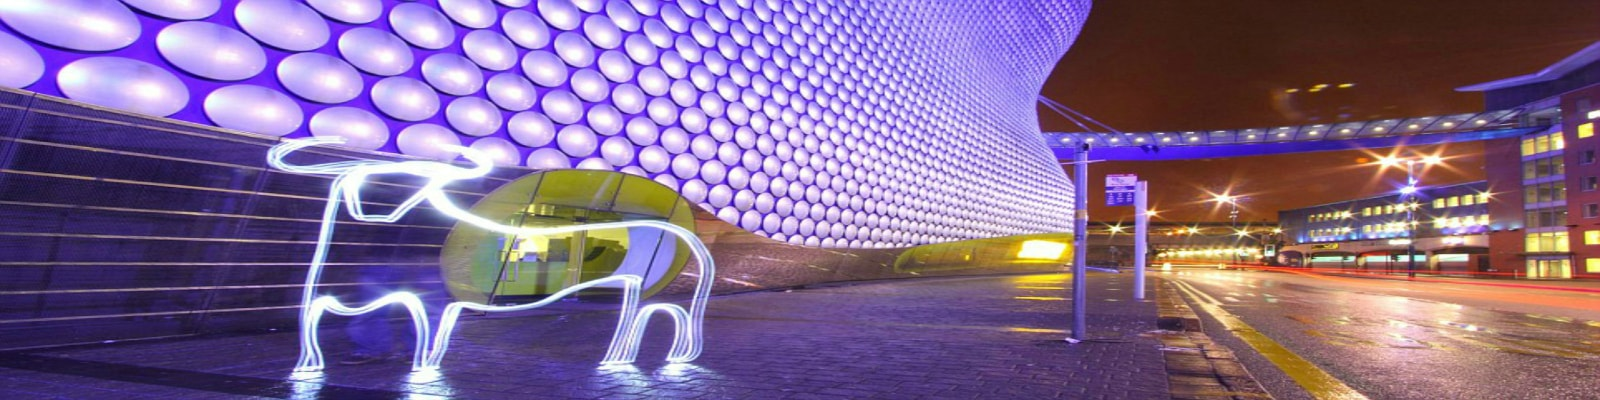 Birmingham-bullring-shopping-center-final-01